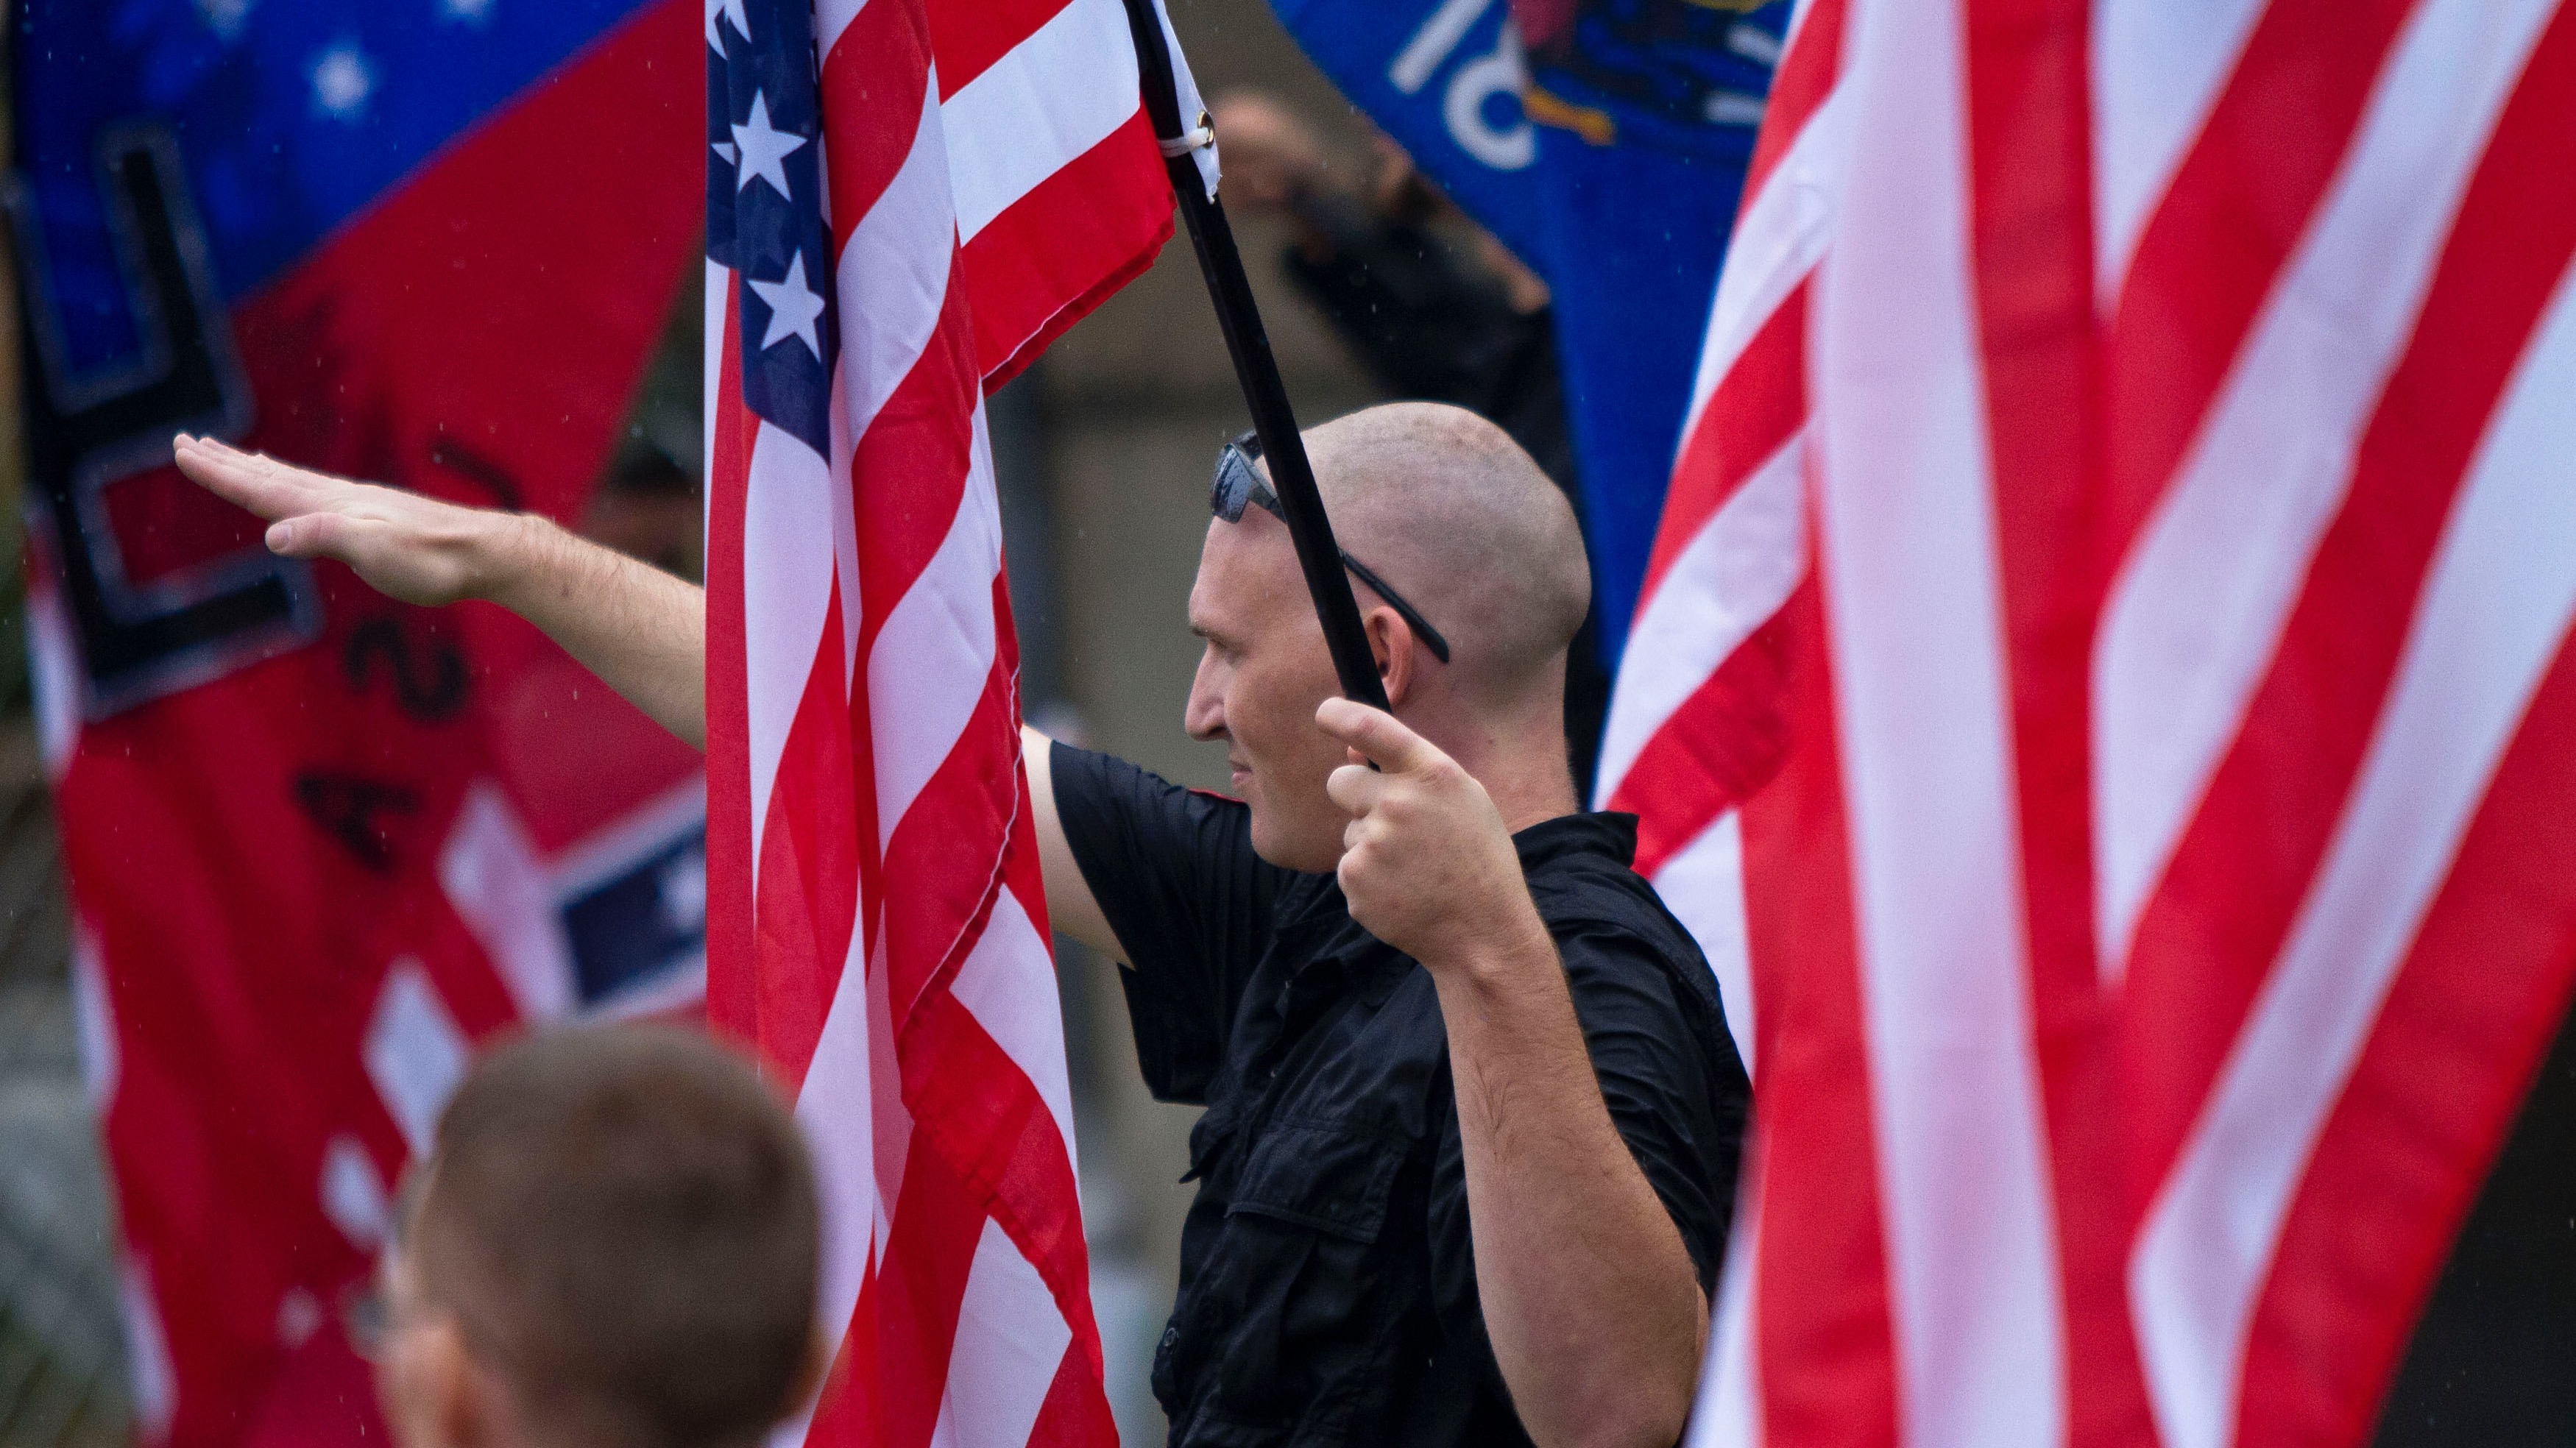 """A member of a white supremacy group gives the fascist salute during a gathering in West Allis, Wisconsin, September 3, 2011. Neo-Nazi demonstrators gathered for a """"rally in defense of white America"""" in response to an incident that Milwaukee Police Chief described as racially charged violence outside the Wisconsin state fair on August 4, 2011. REUTERS/Darren Hauck (UNITED STATES) REUTERS/Darren Hauck (UNITED STATES - Tags: POLITICS CIVIL UNREST SOCIETY) - RTR2QRBL"""